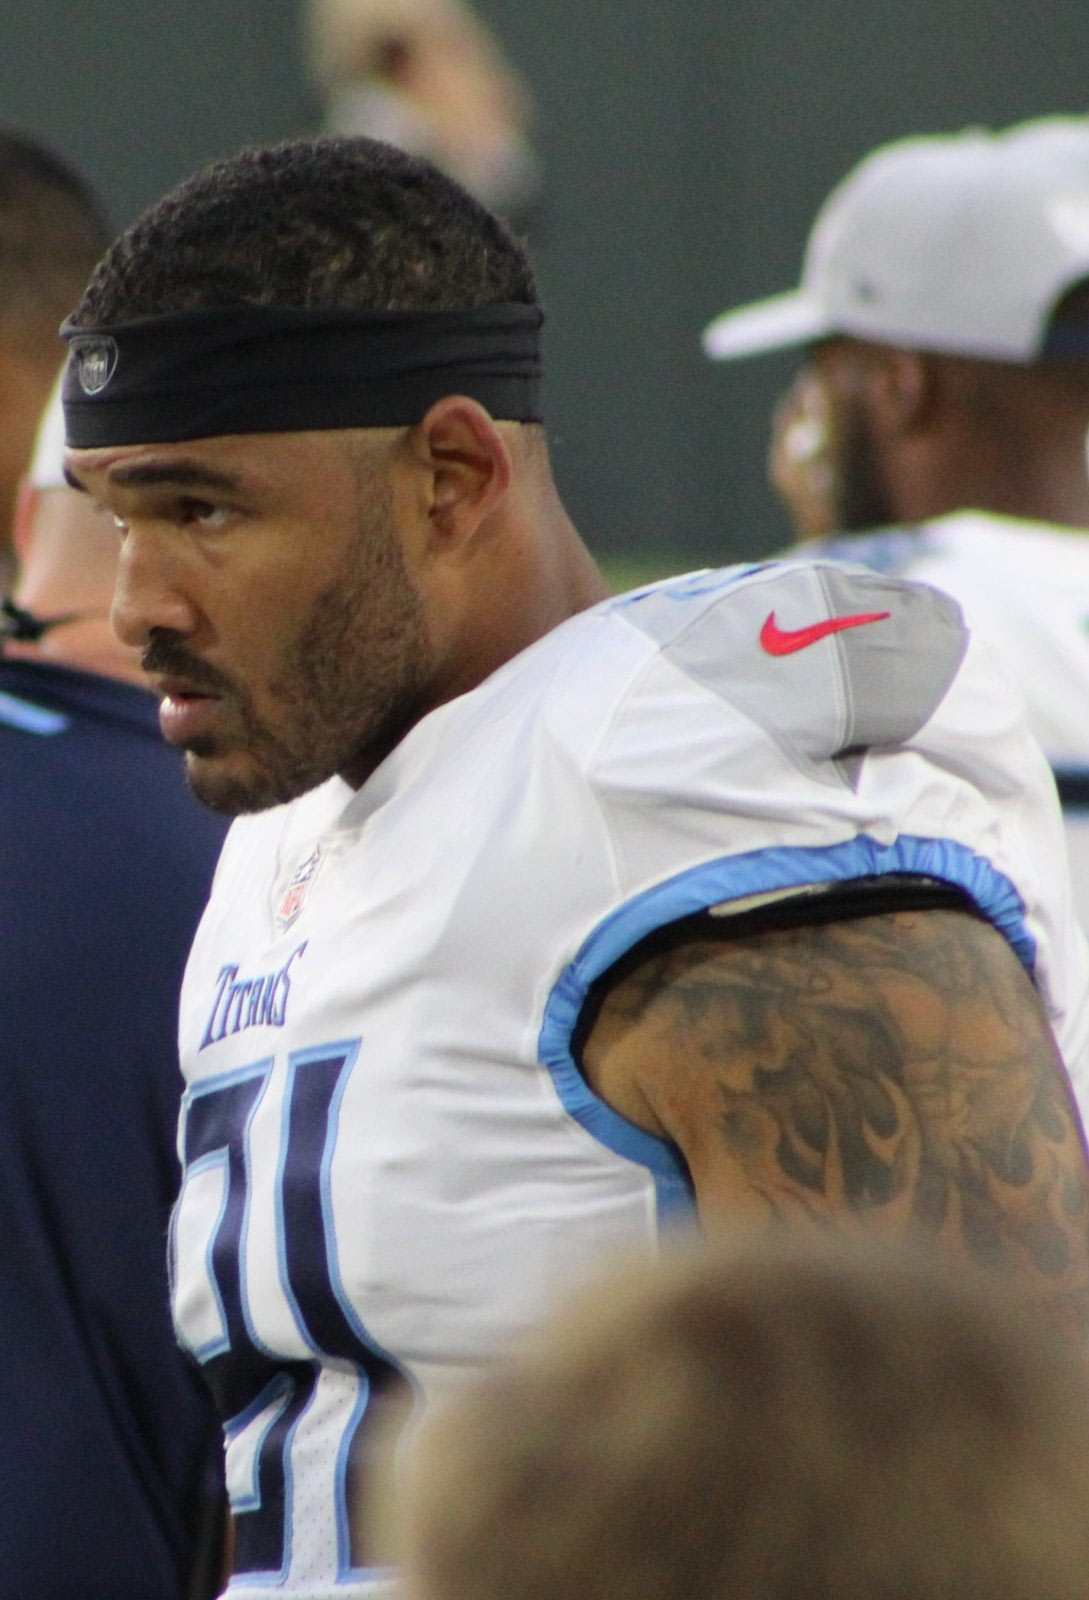 Former American football linebacker for the Tennessee Titans, Derrick Morgan